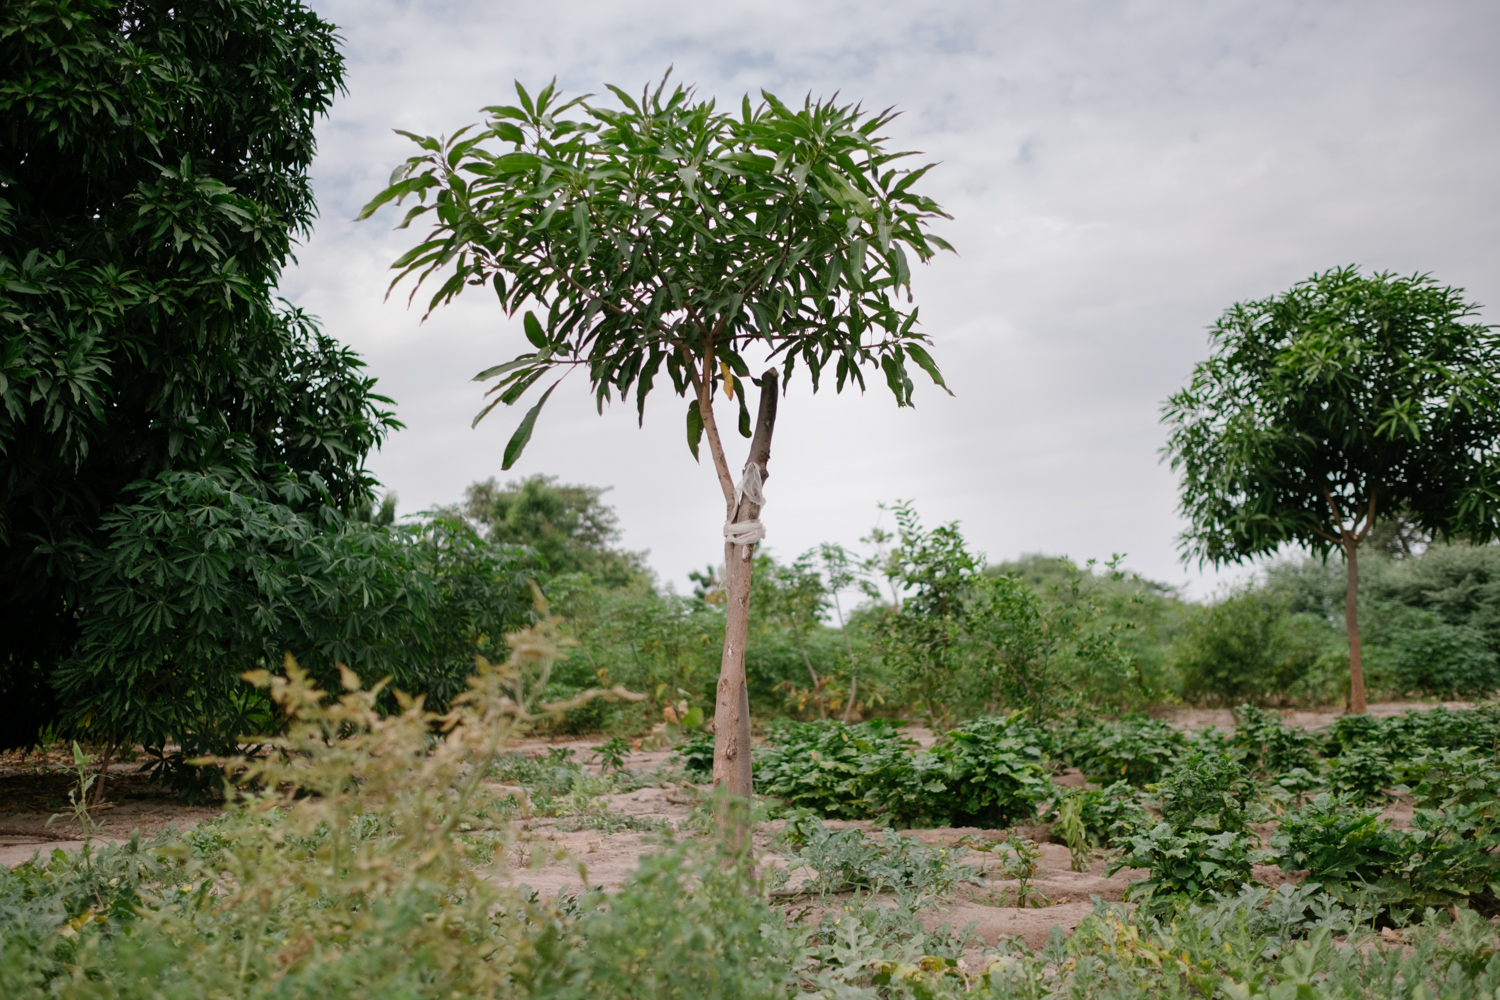 Senegal-Ecosia-Forest-Garden-Agroforestry-trees-climate-change--57-of-103-